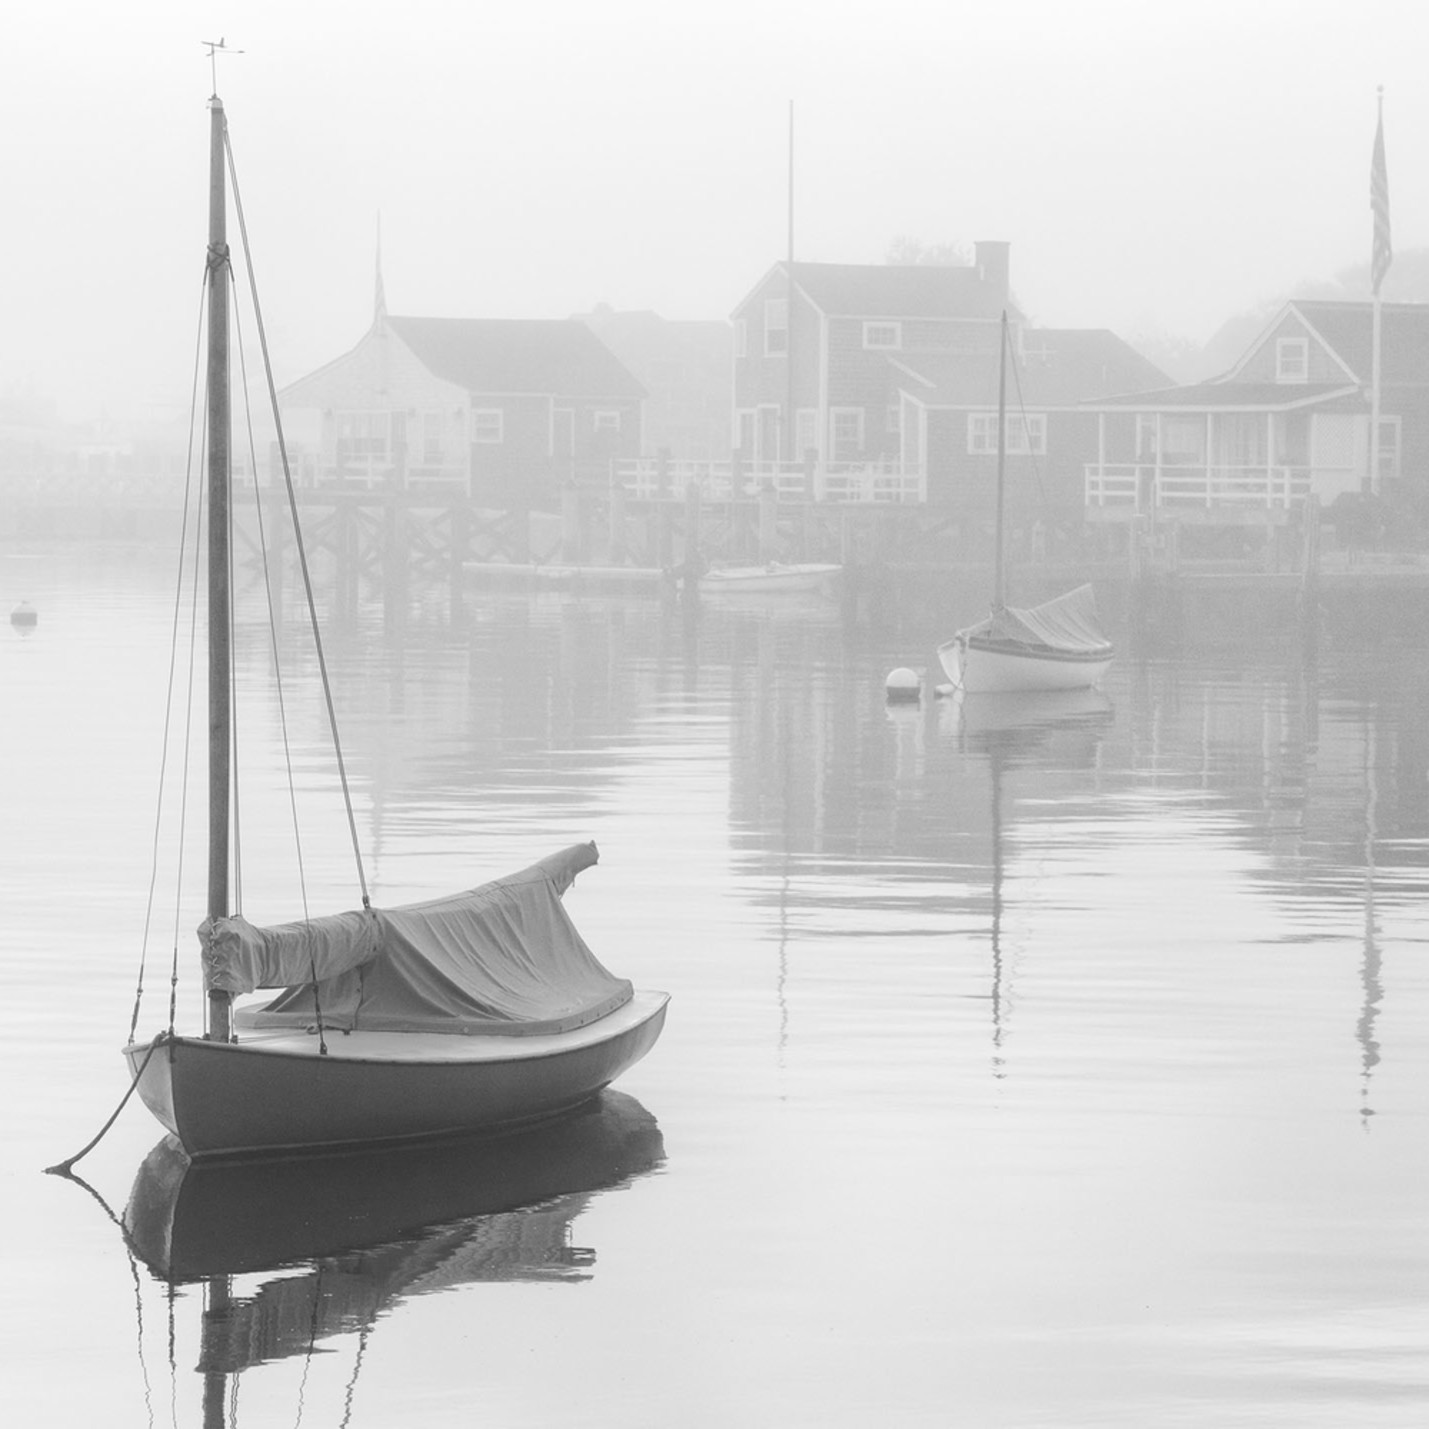 Nantucket foggy sunrise 20170916 6368 web b6zdoc